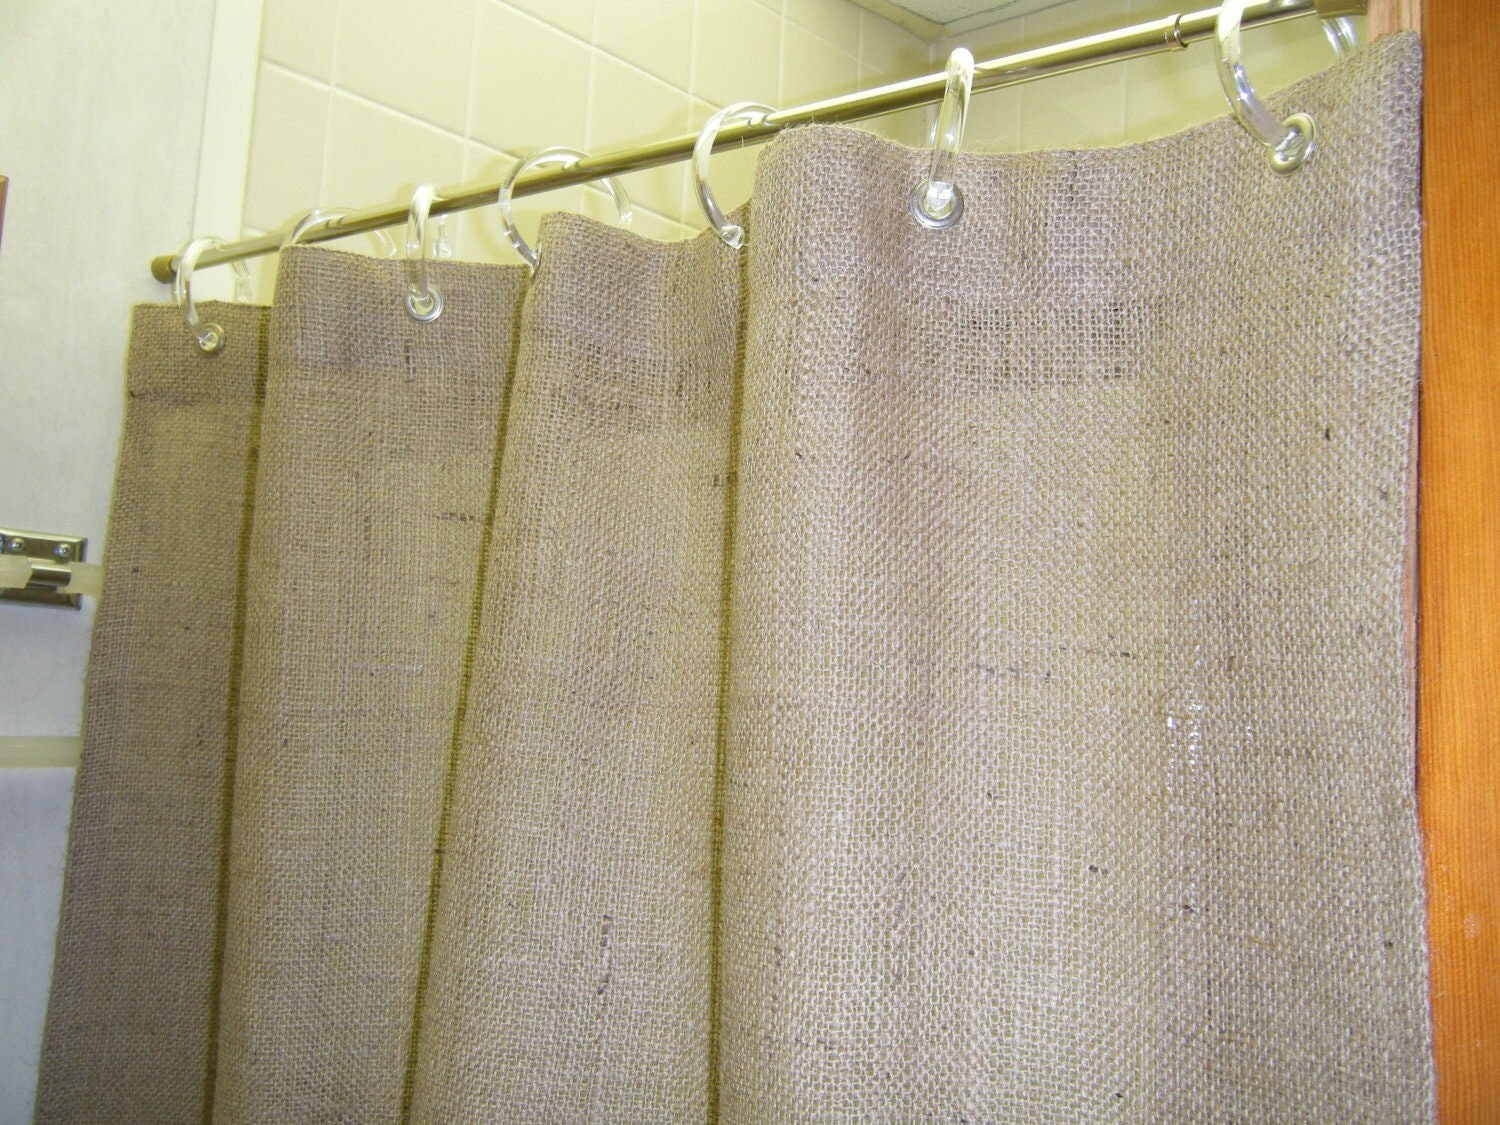 Burlap Door Shower STALL Curtain 37 WIDE X